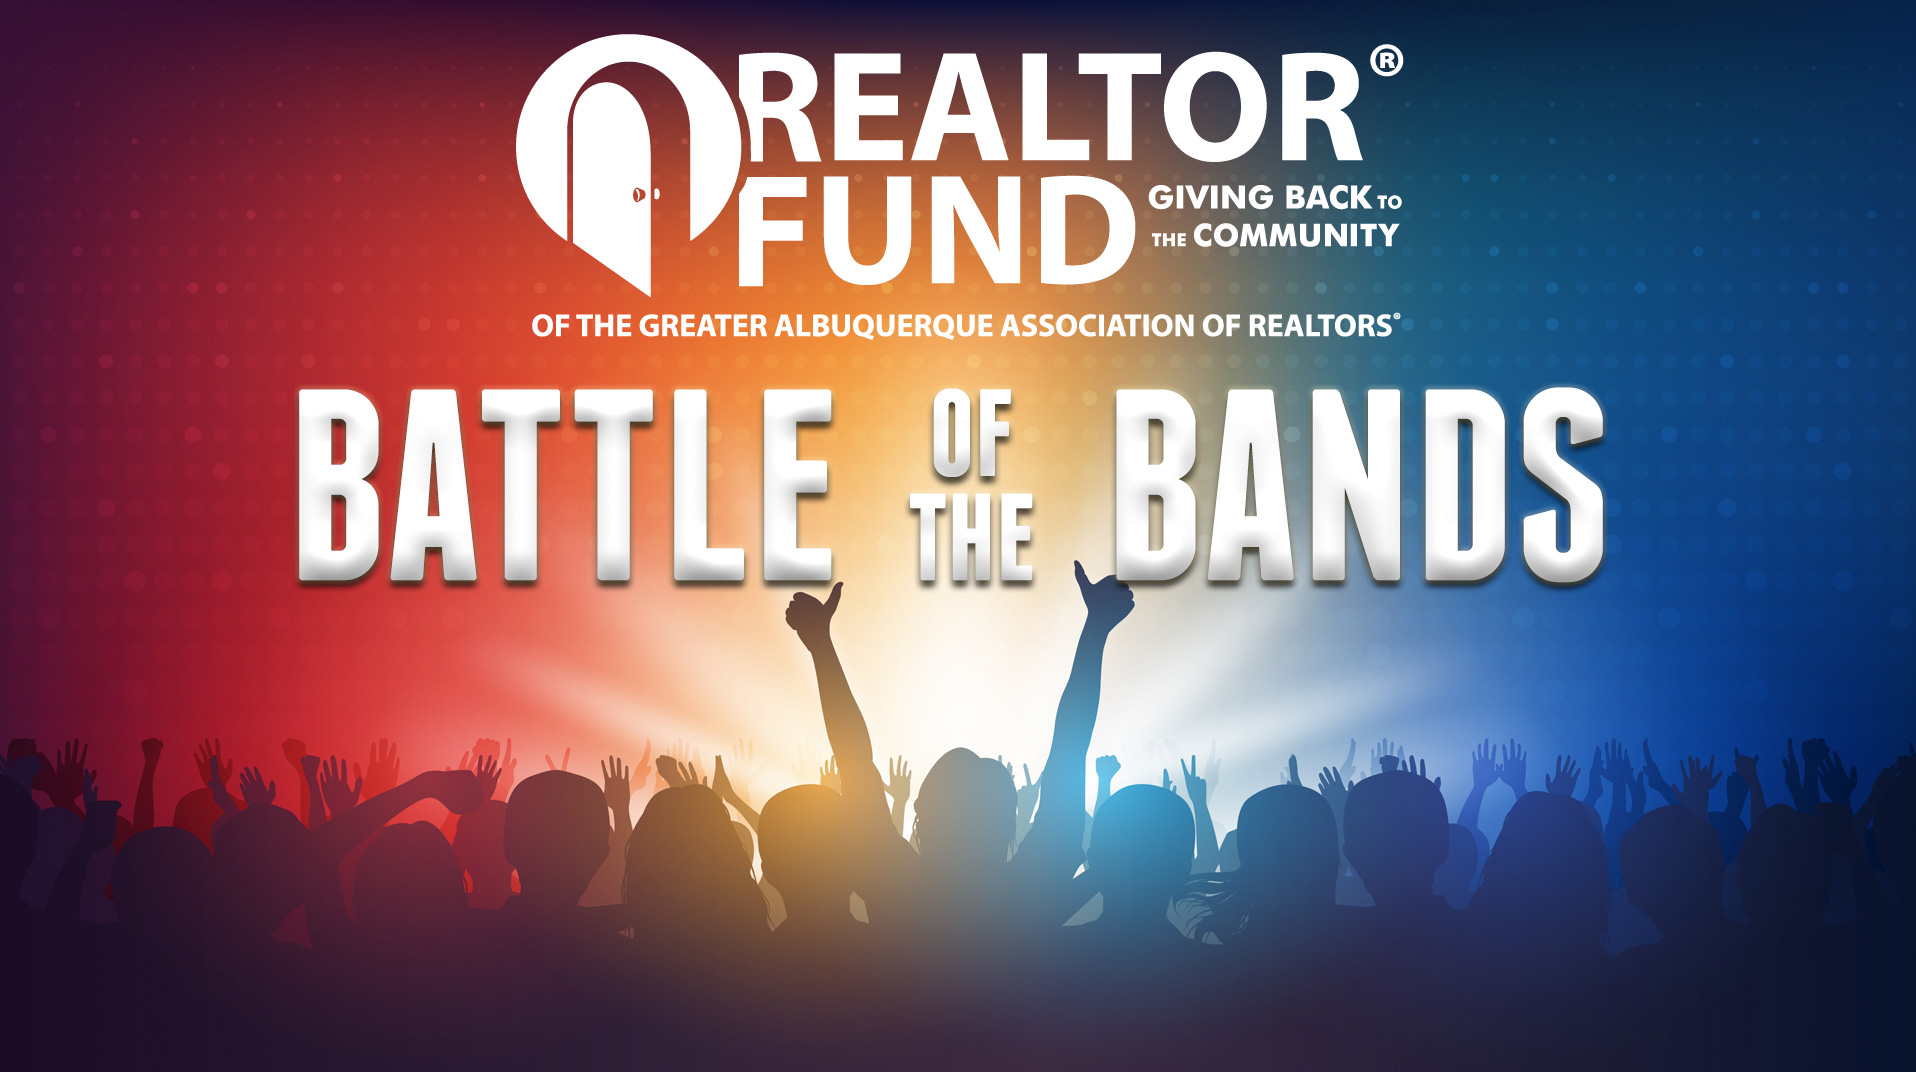 Rock out at BATTLE of the BANDS on Thursday, September 30th